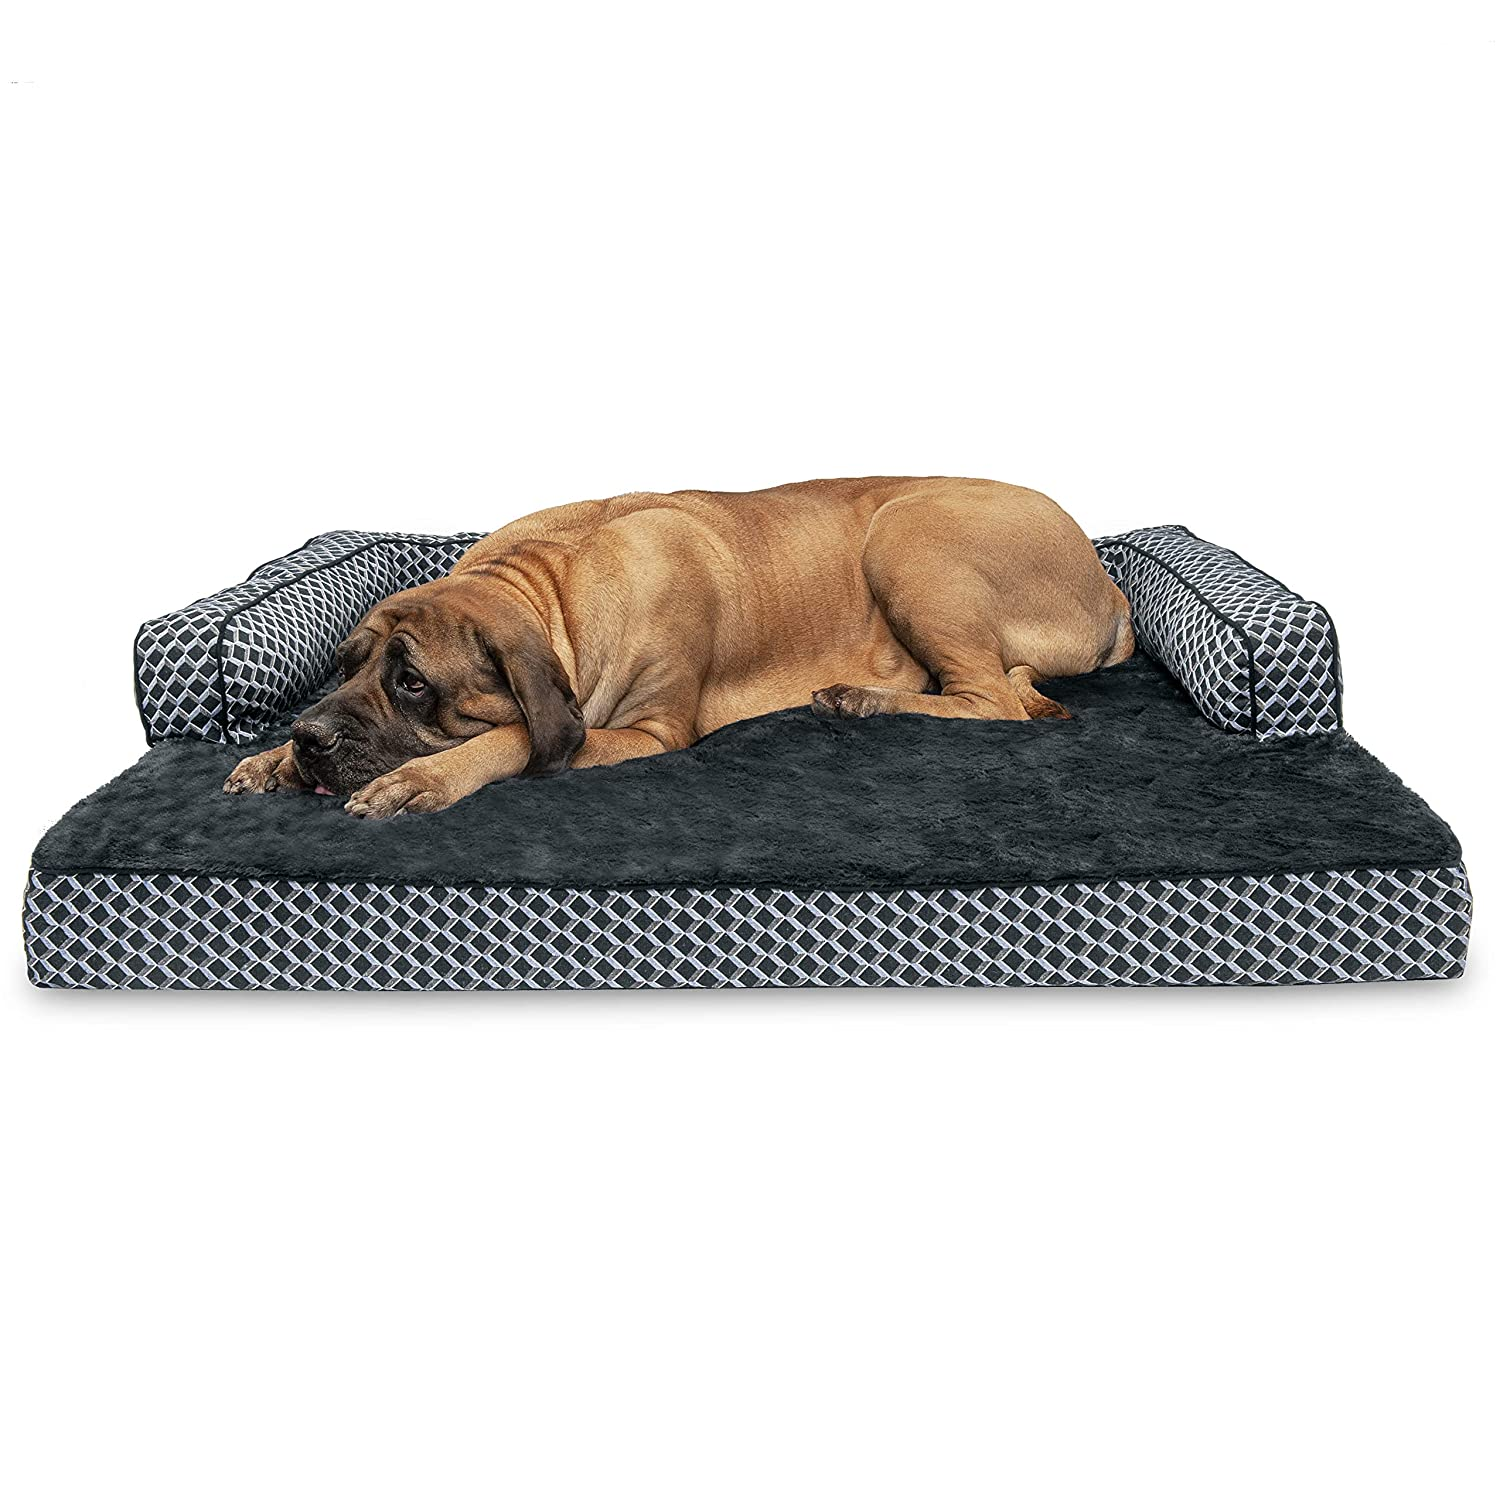 Furhaven Pet Dog Bed Orthopedic Plush Faux Fur D cor Comfy Couch Traditional Sofa-Style Living Room Couch Pet Bed w Removable Cover for Dogs Cats, Diamond Gray, Jumbo Plus